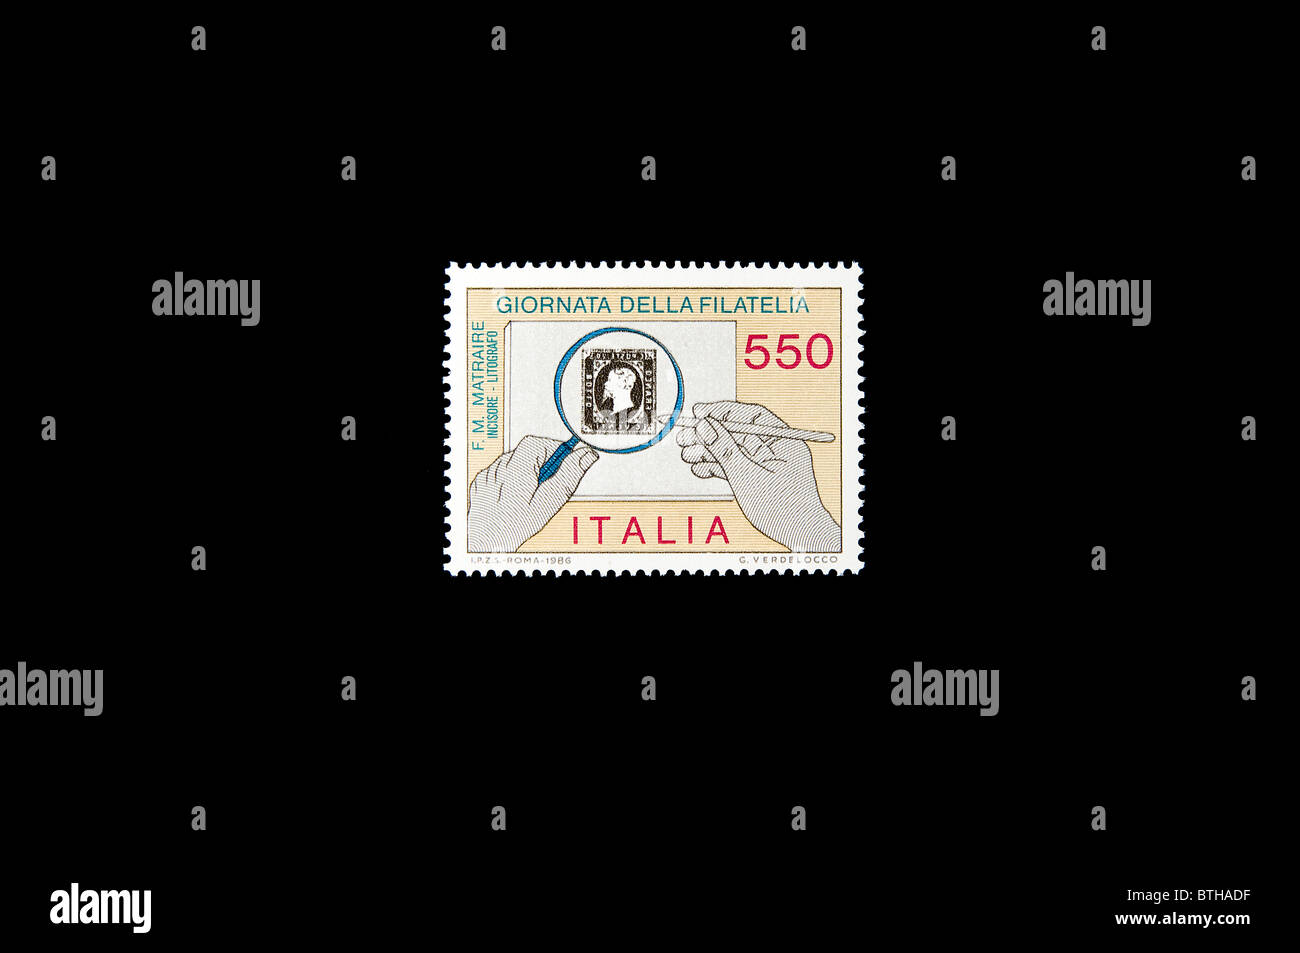 The philately celebration in an italian stamp. - Stock Image